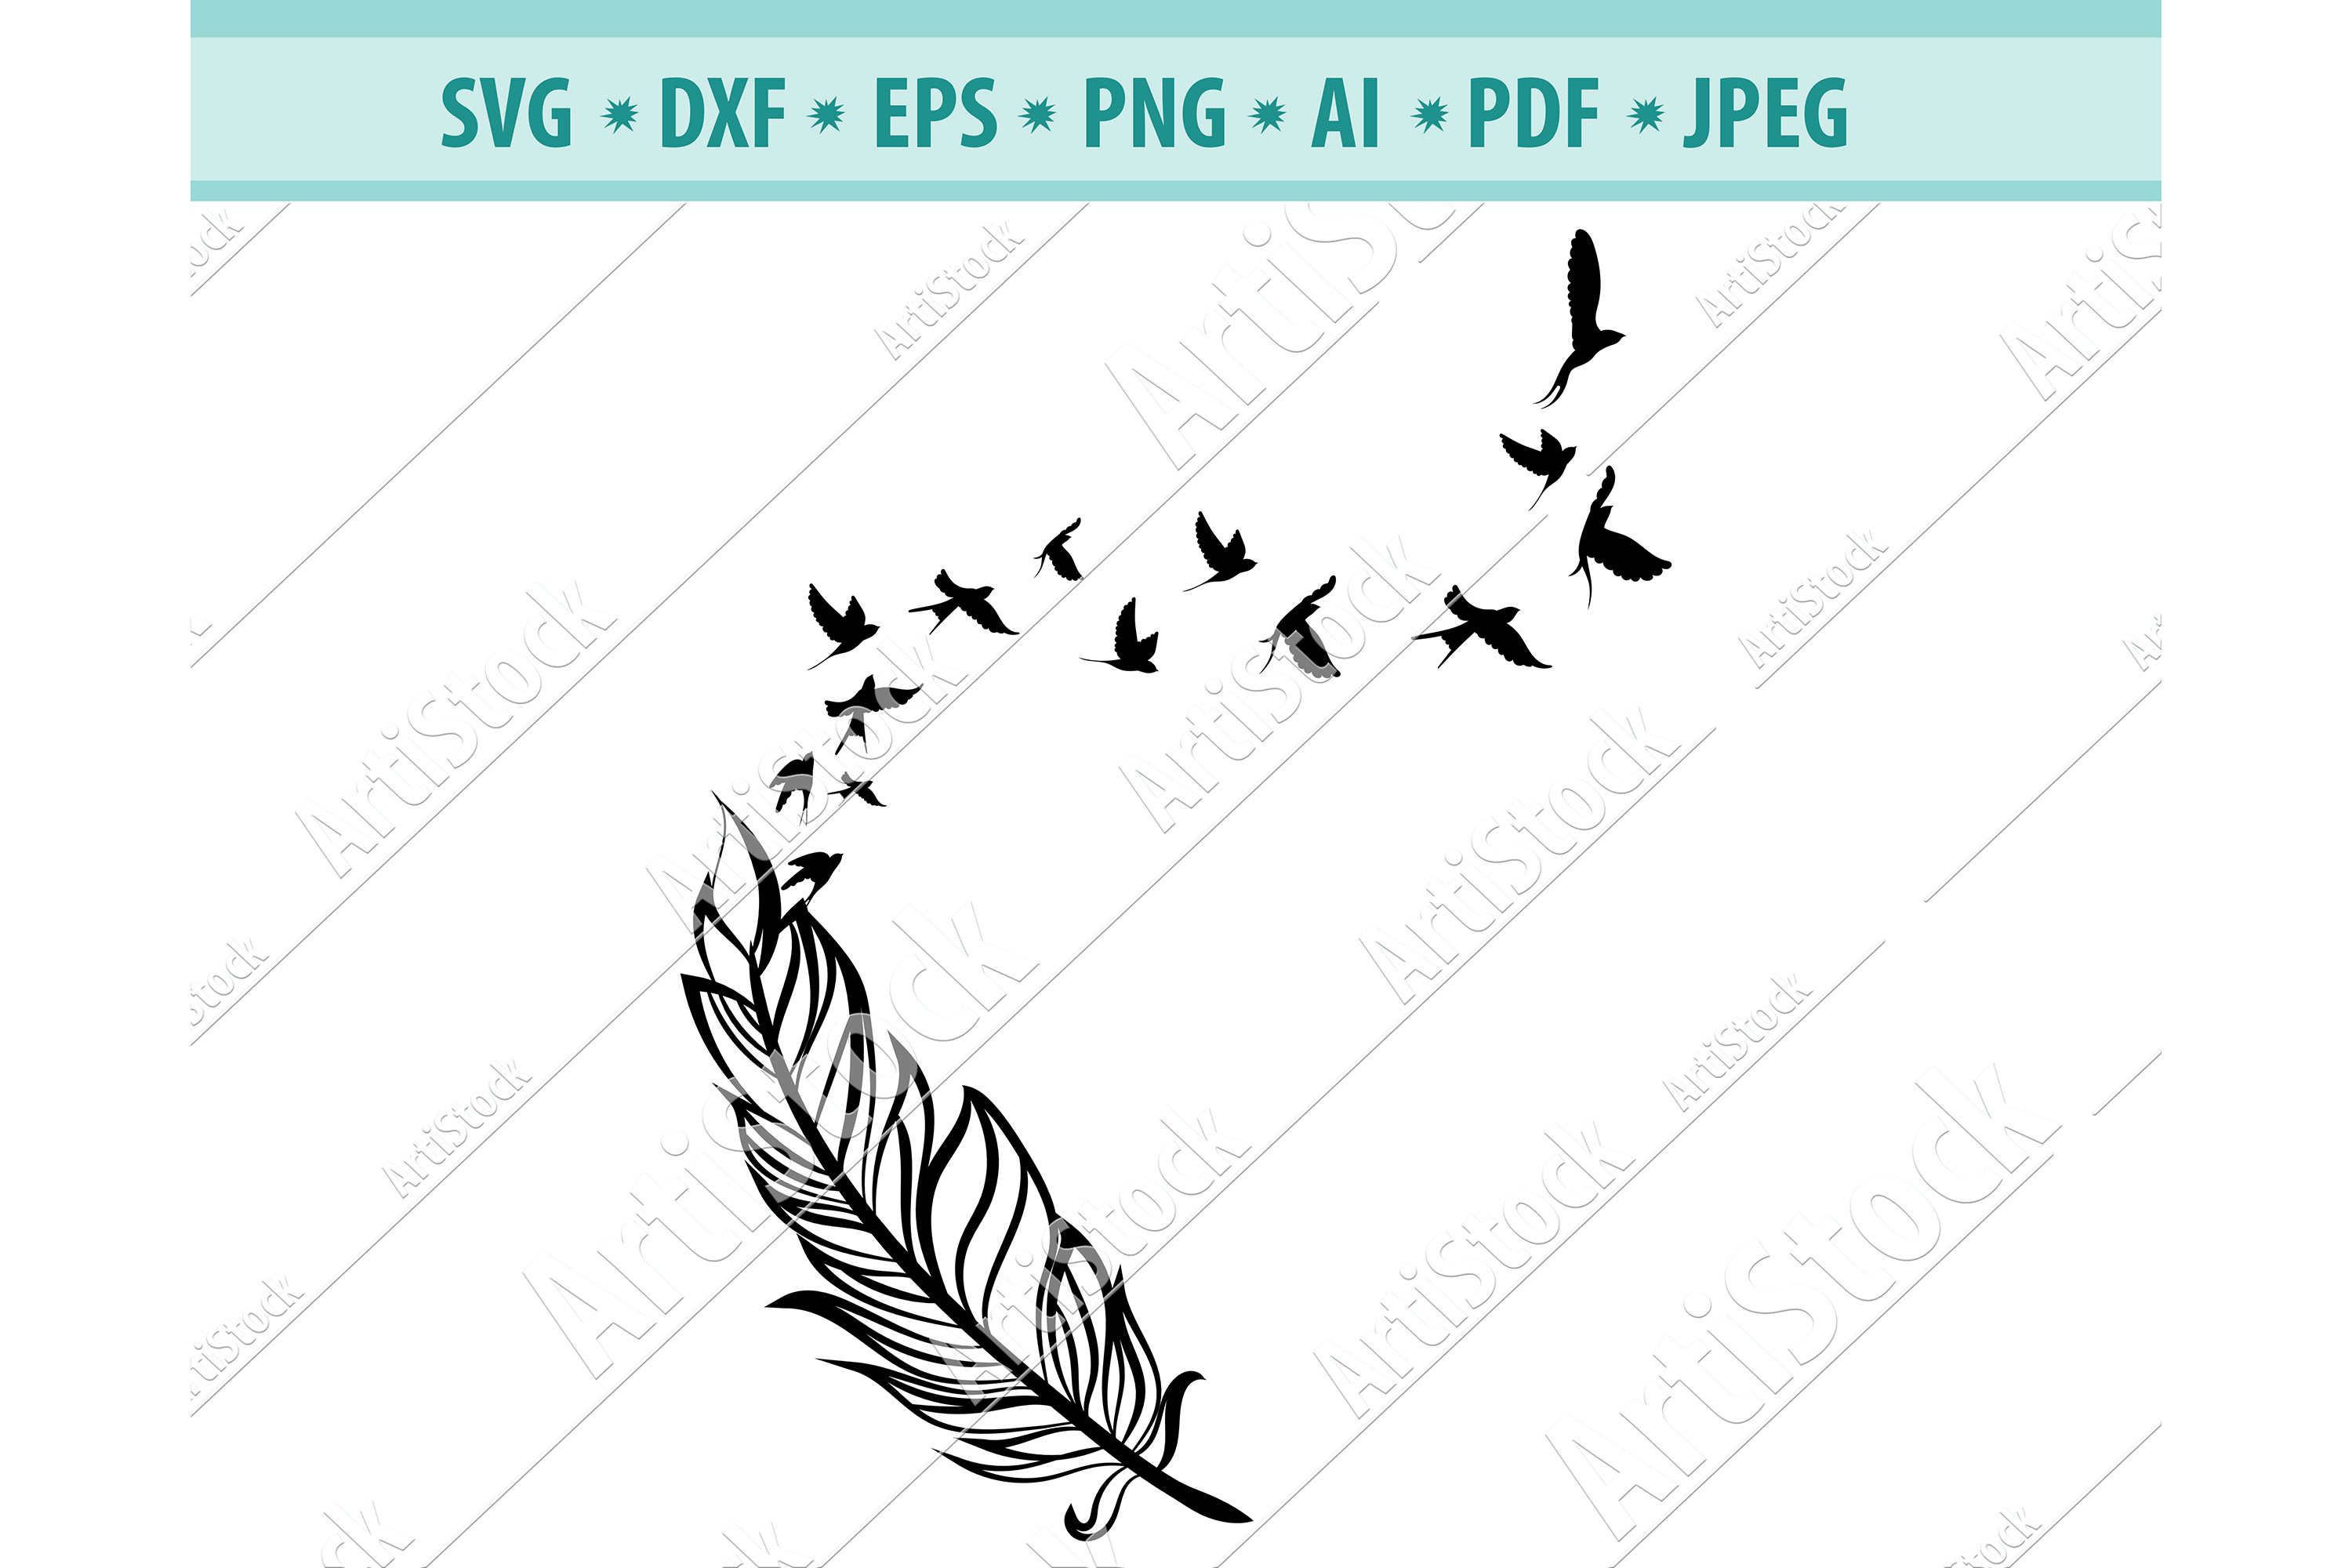 Feather to Birds Svg, Doves feathers Svg, Gift Dxf, Png, Eps example image 1